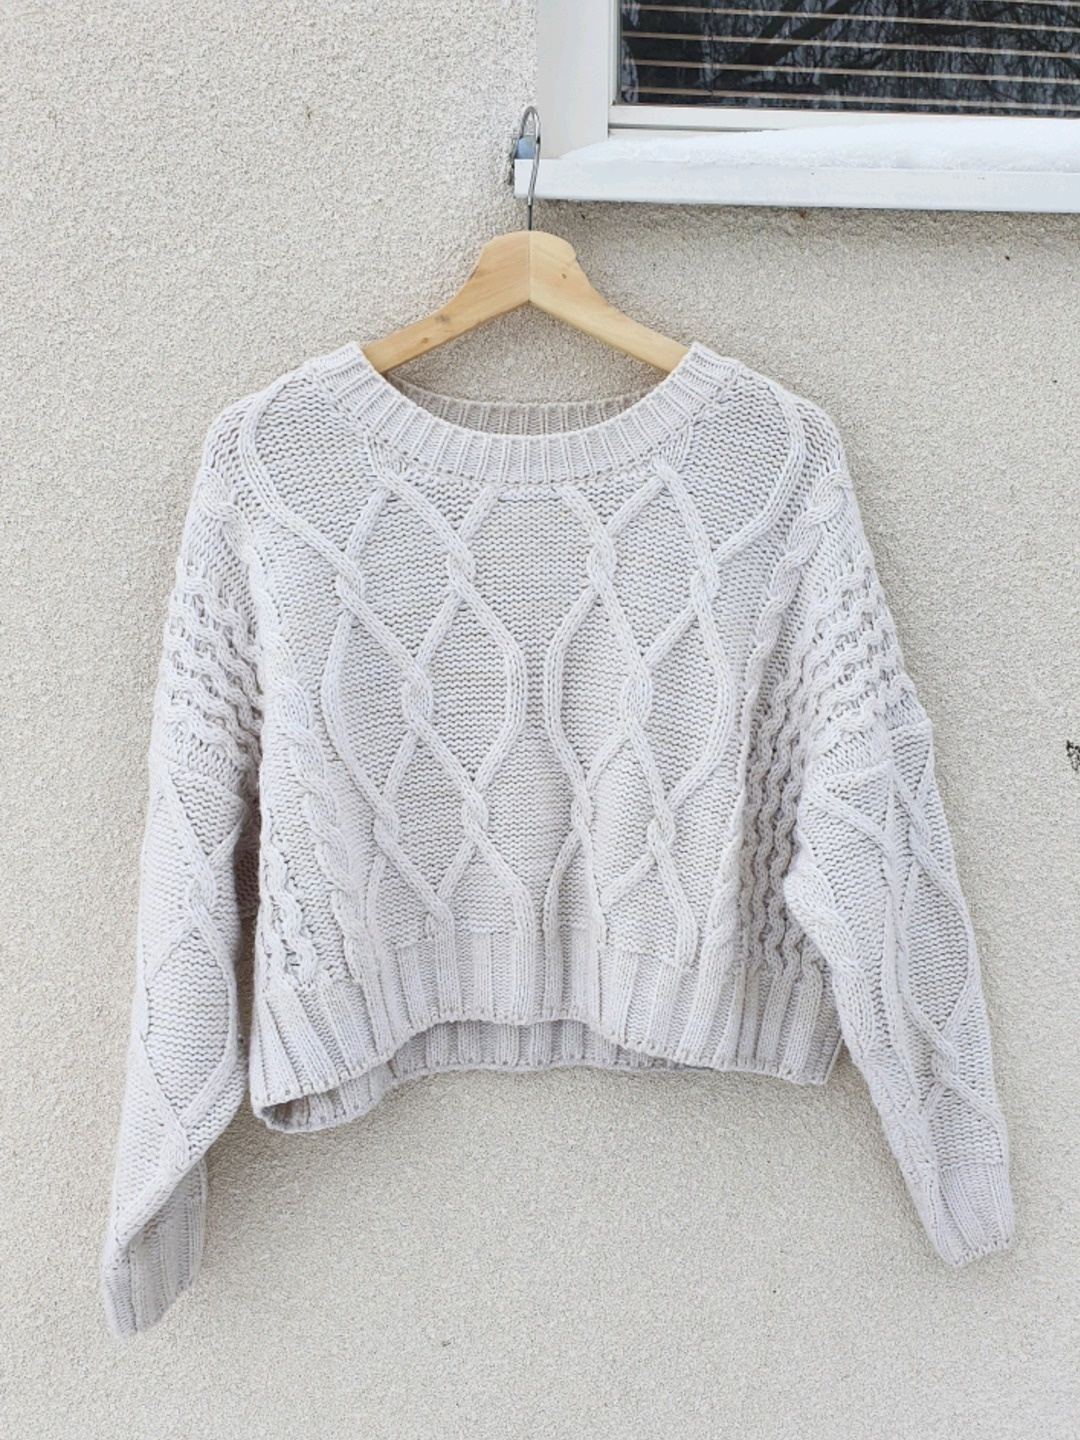 Women's jumpers & cardigans - PRINCESS POLLY photo 2